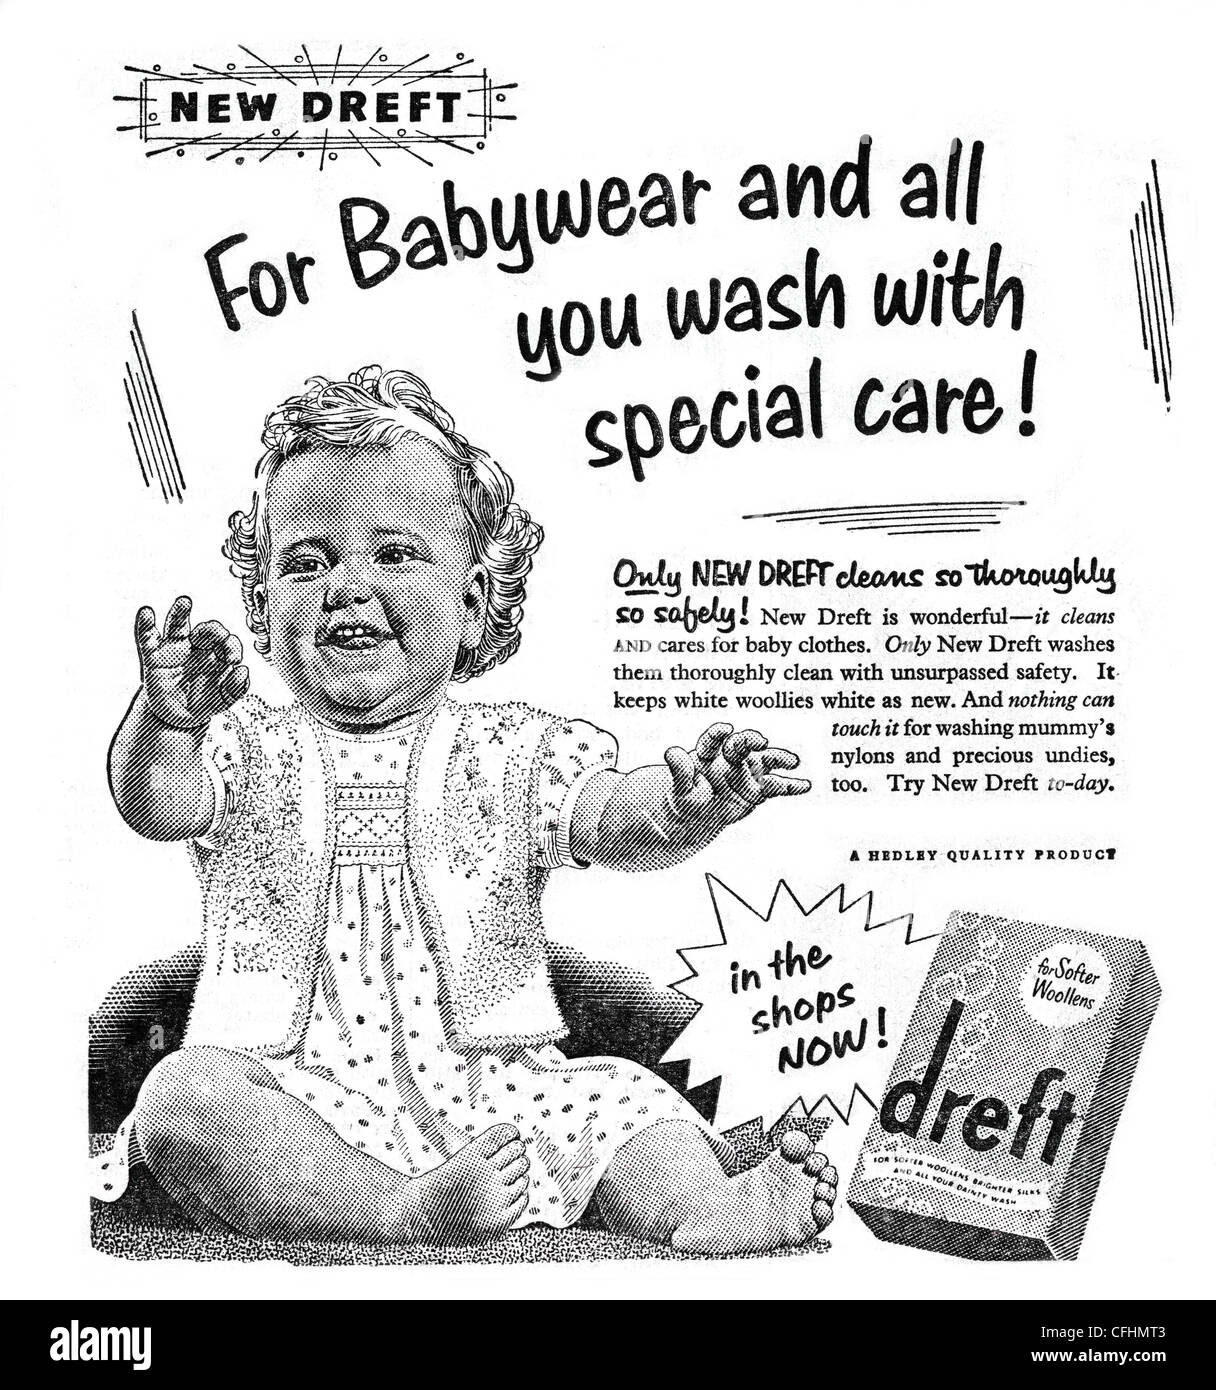 Dreft washing powder advert from 1954, a brand owned by Proctor & Gamble - Stock Image